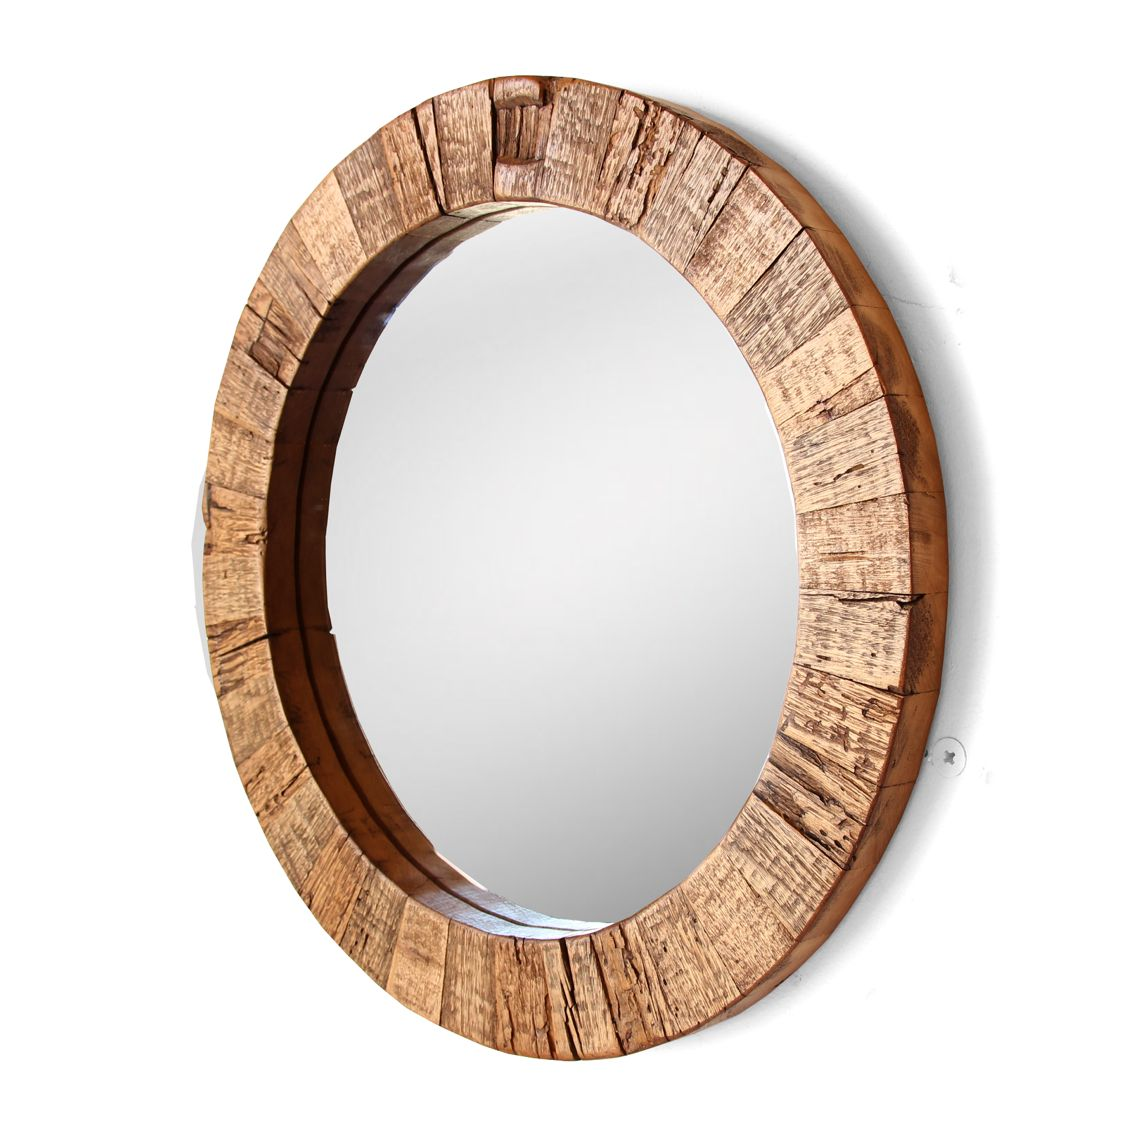 20 Round Reclaimed Wood Mirror By